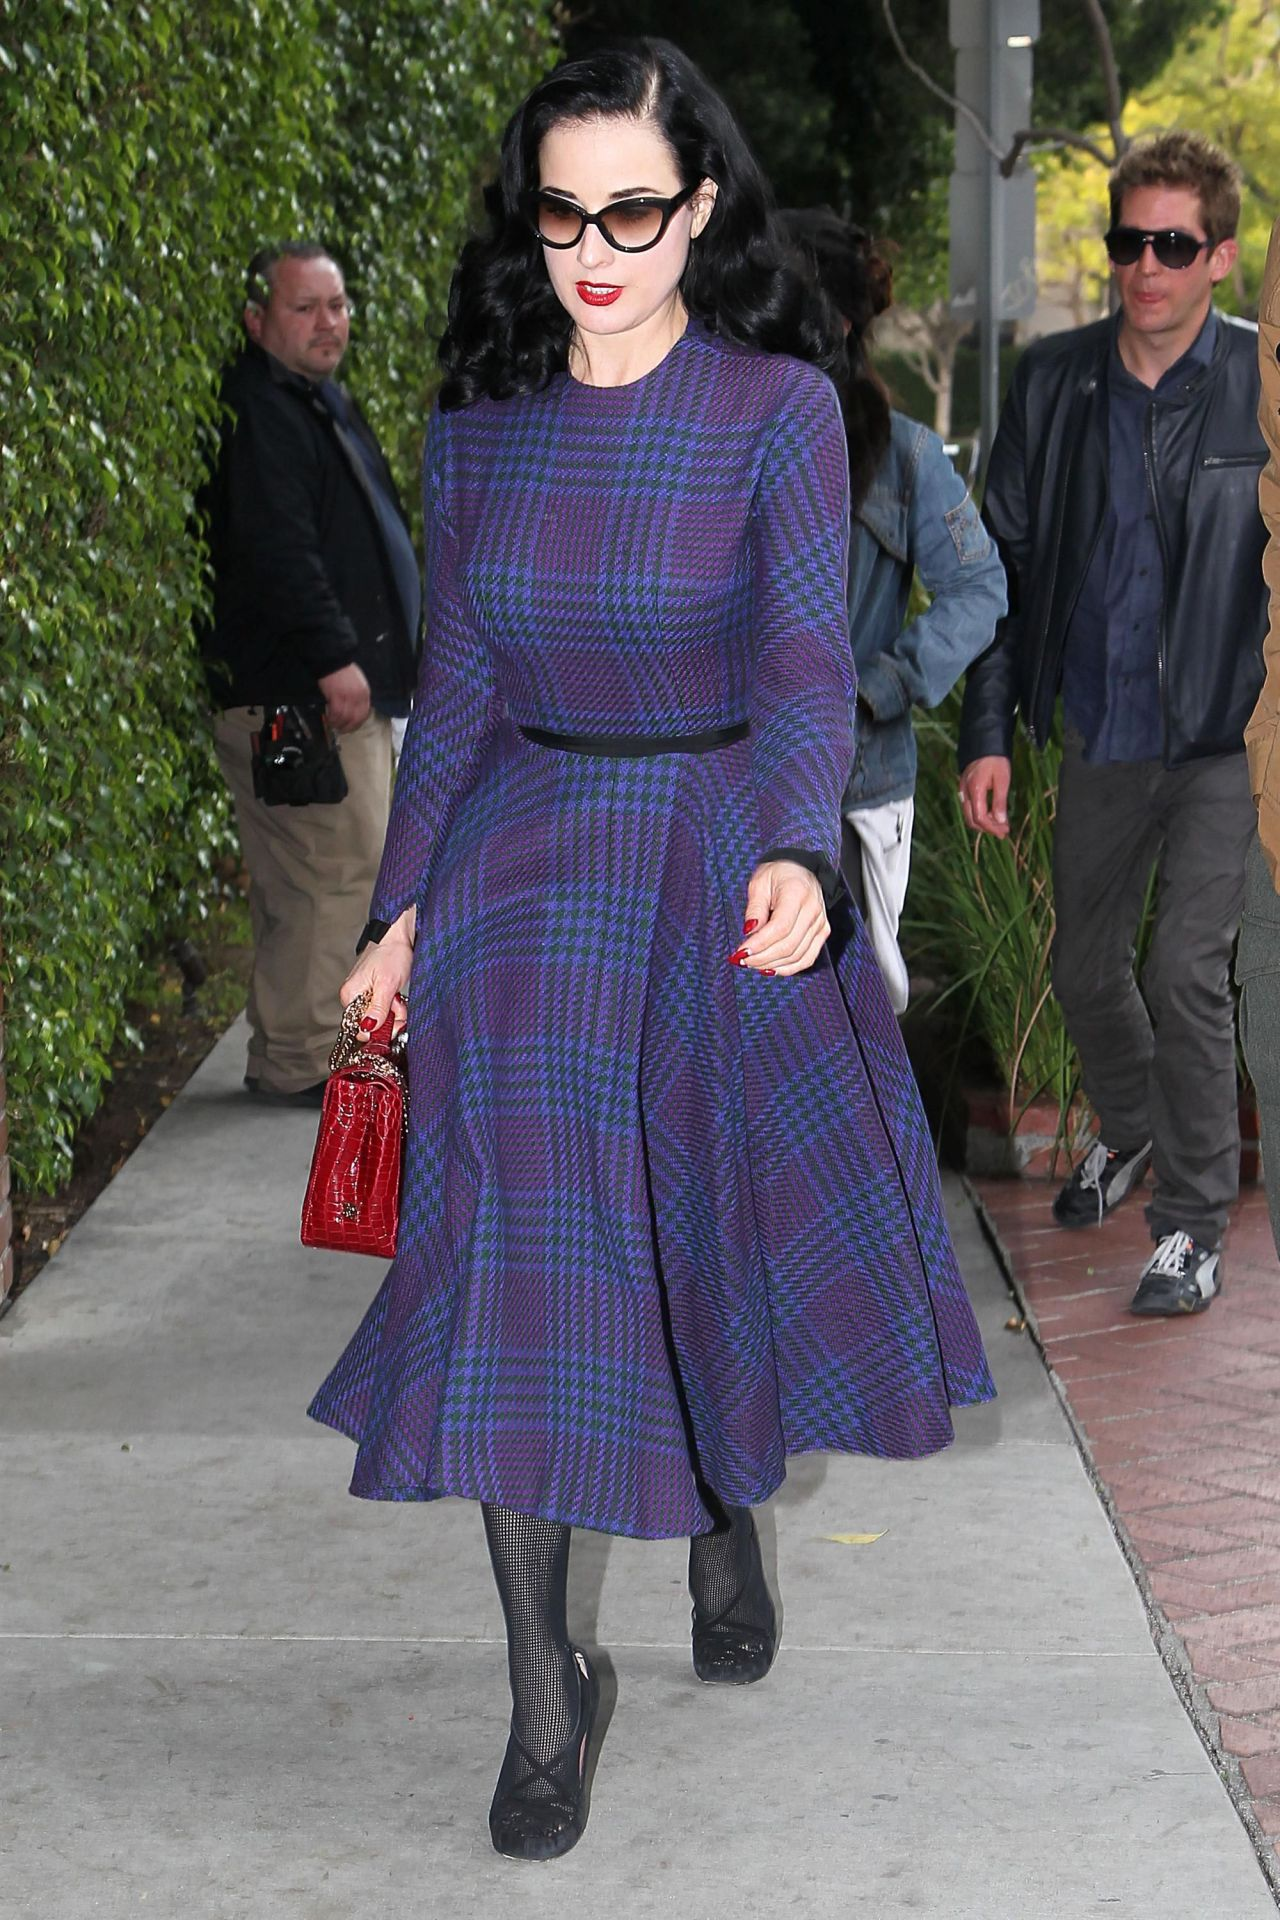 Dita Von Teese out in LA, February 10th